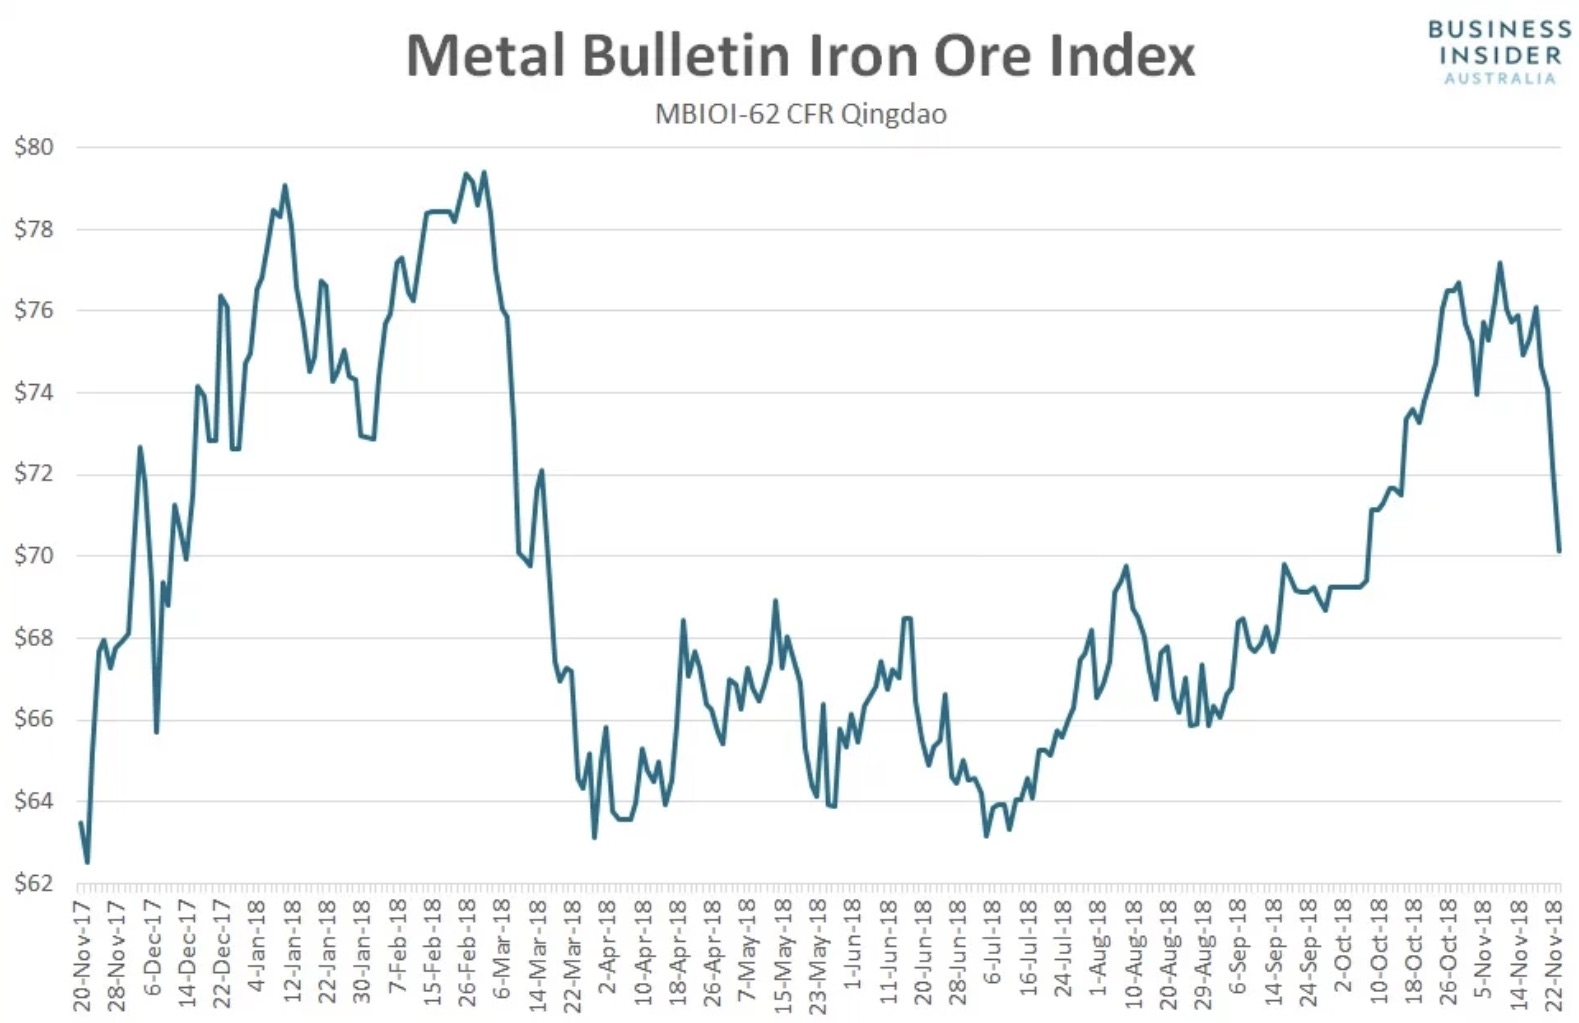 With the latest price plunge, iron ore confirmed another topping pattern. The last top fell short of the double-top that started 2018.